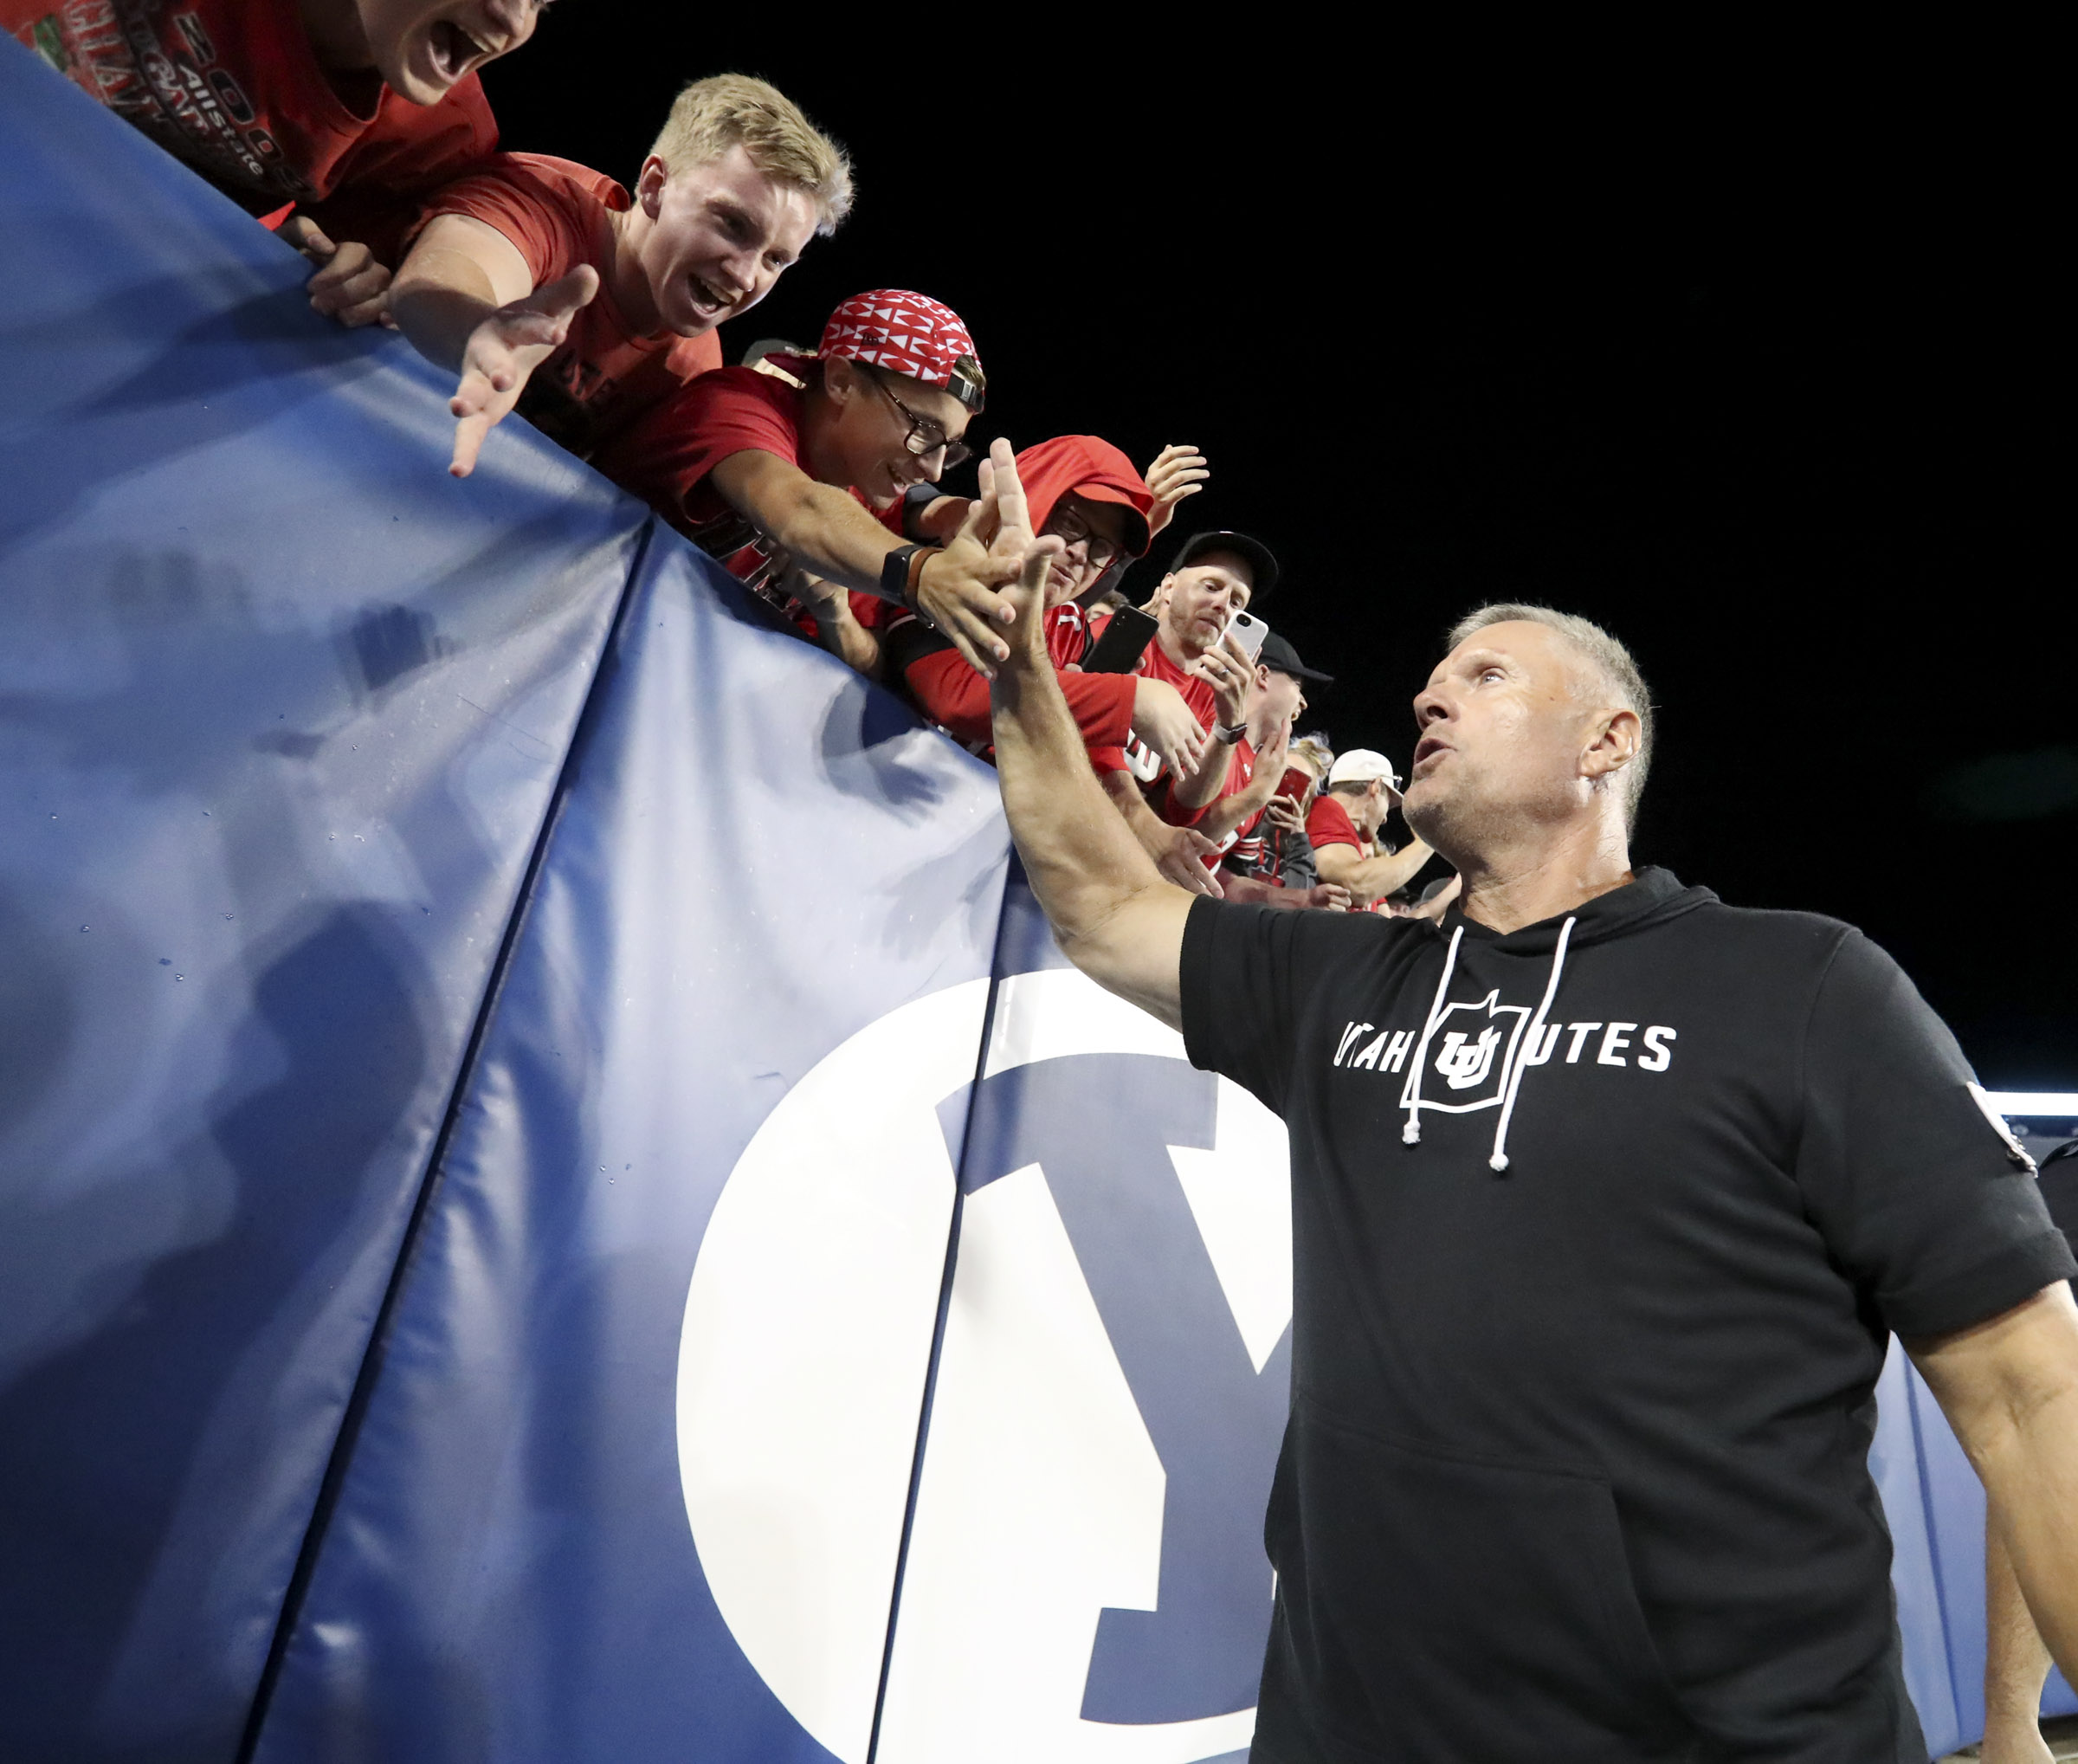 Fans stretch to high-five Utah Utes head coach Kyle Whittingham after the Utes defeated BYU 30-12 in Provo on Aug. 30, 2019.